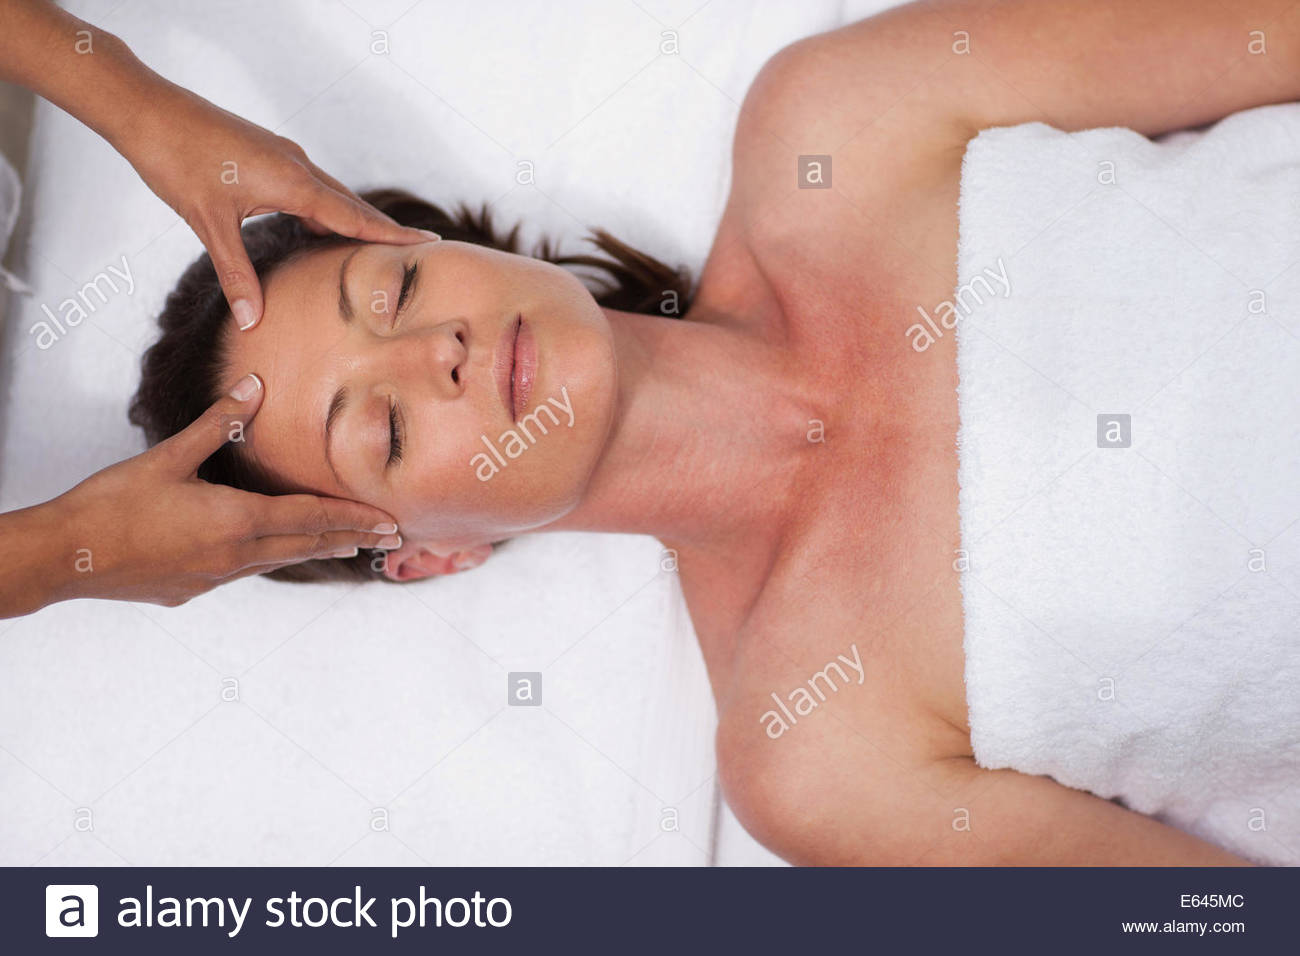 Woman receiving facial massage - Stock Image